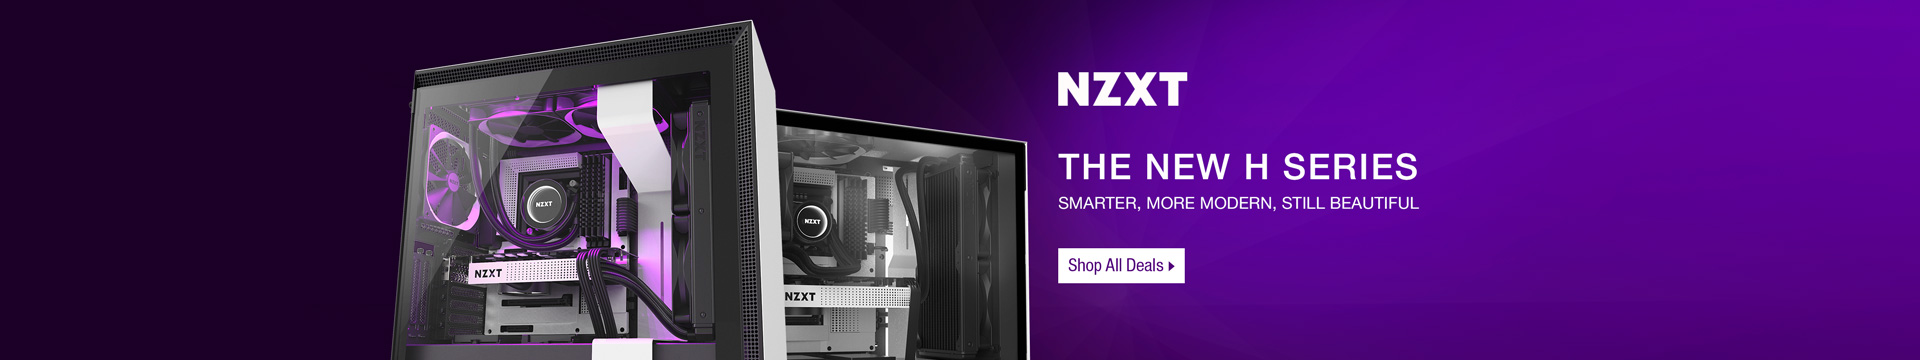 NZXT THE NEW H SERIES